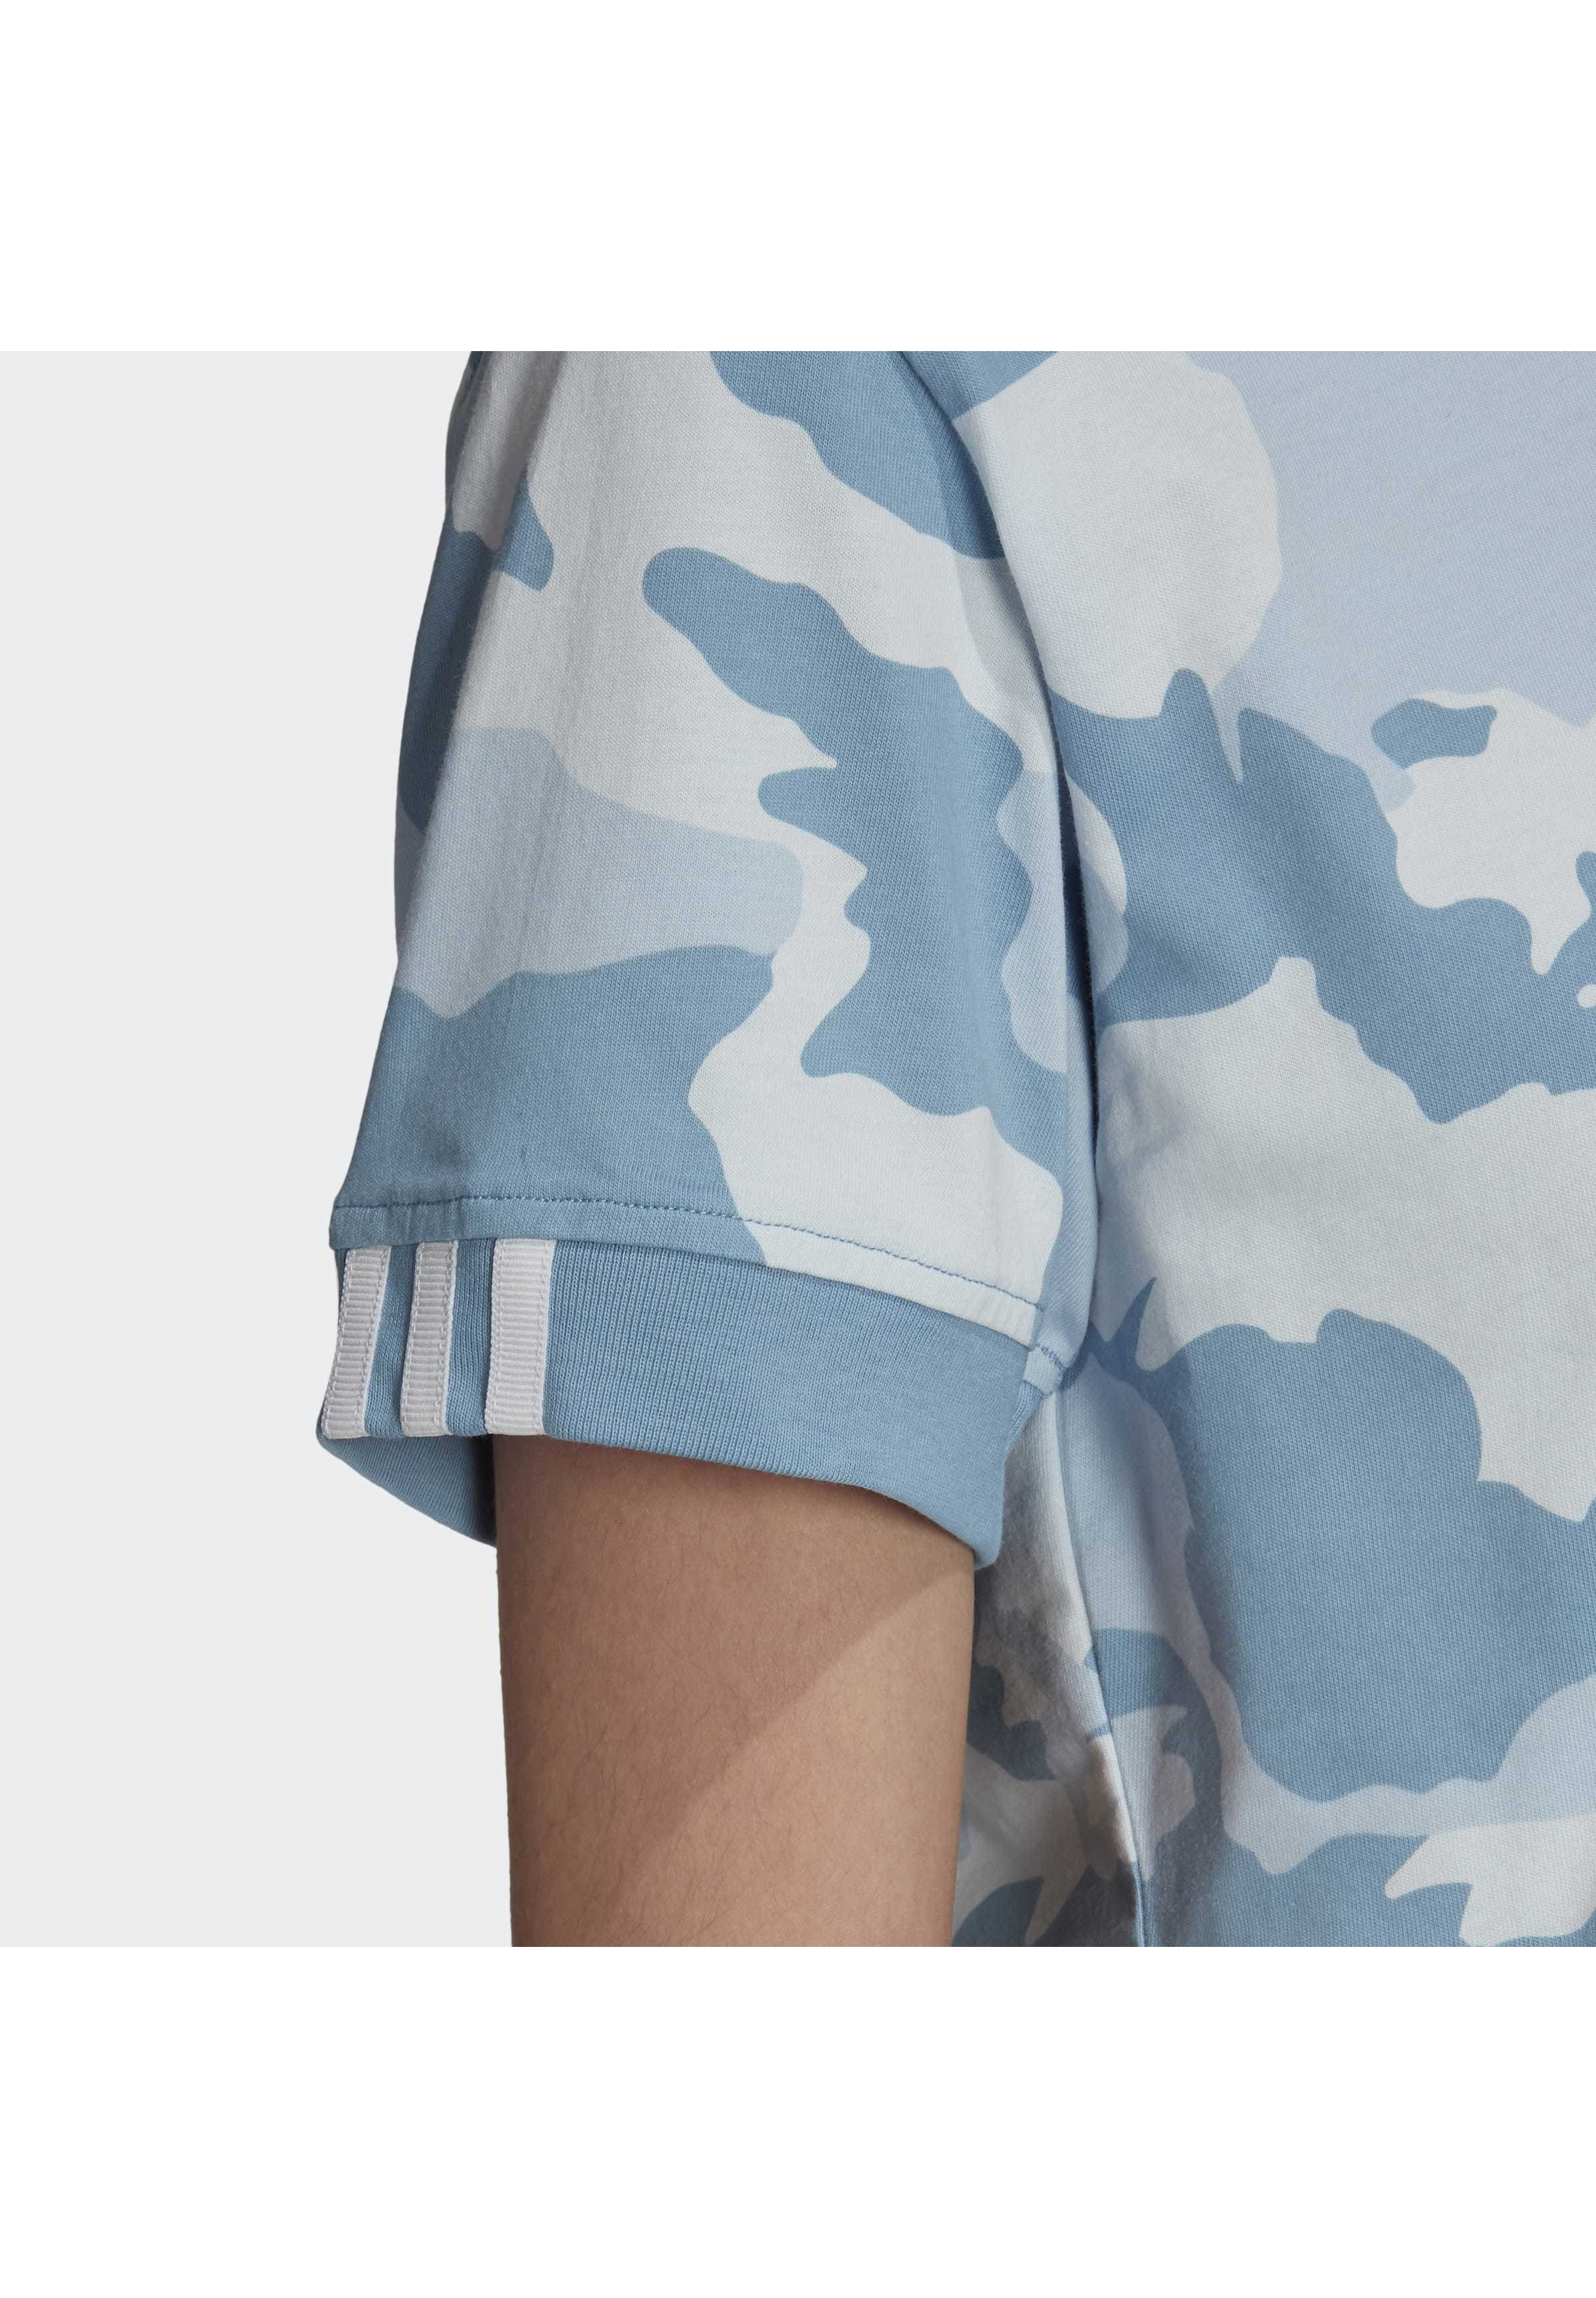 Adidas Originals Crop Top - T-shirts Med Print Blue/hvit